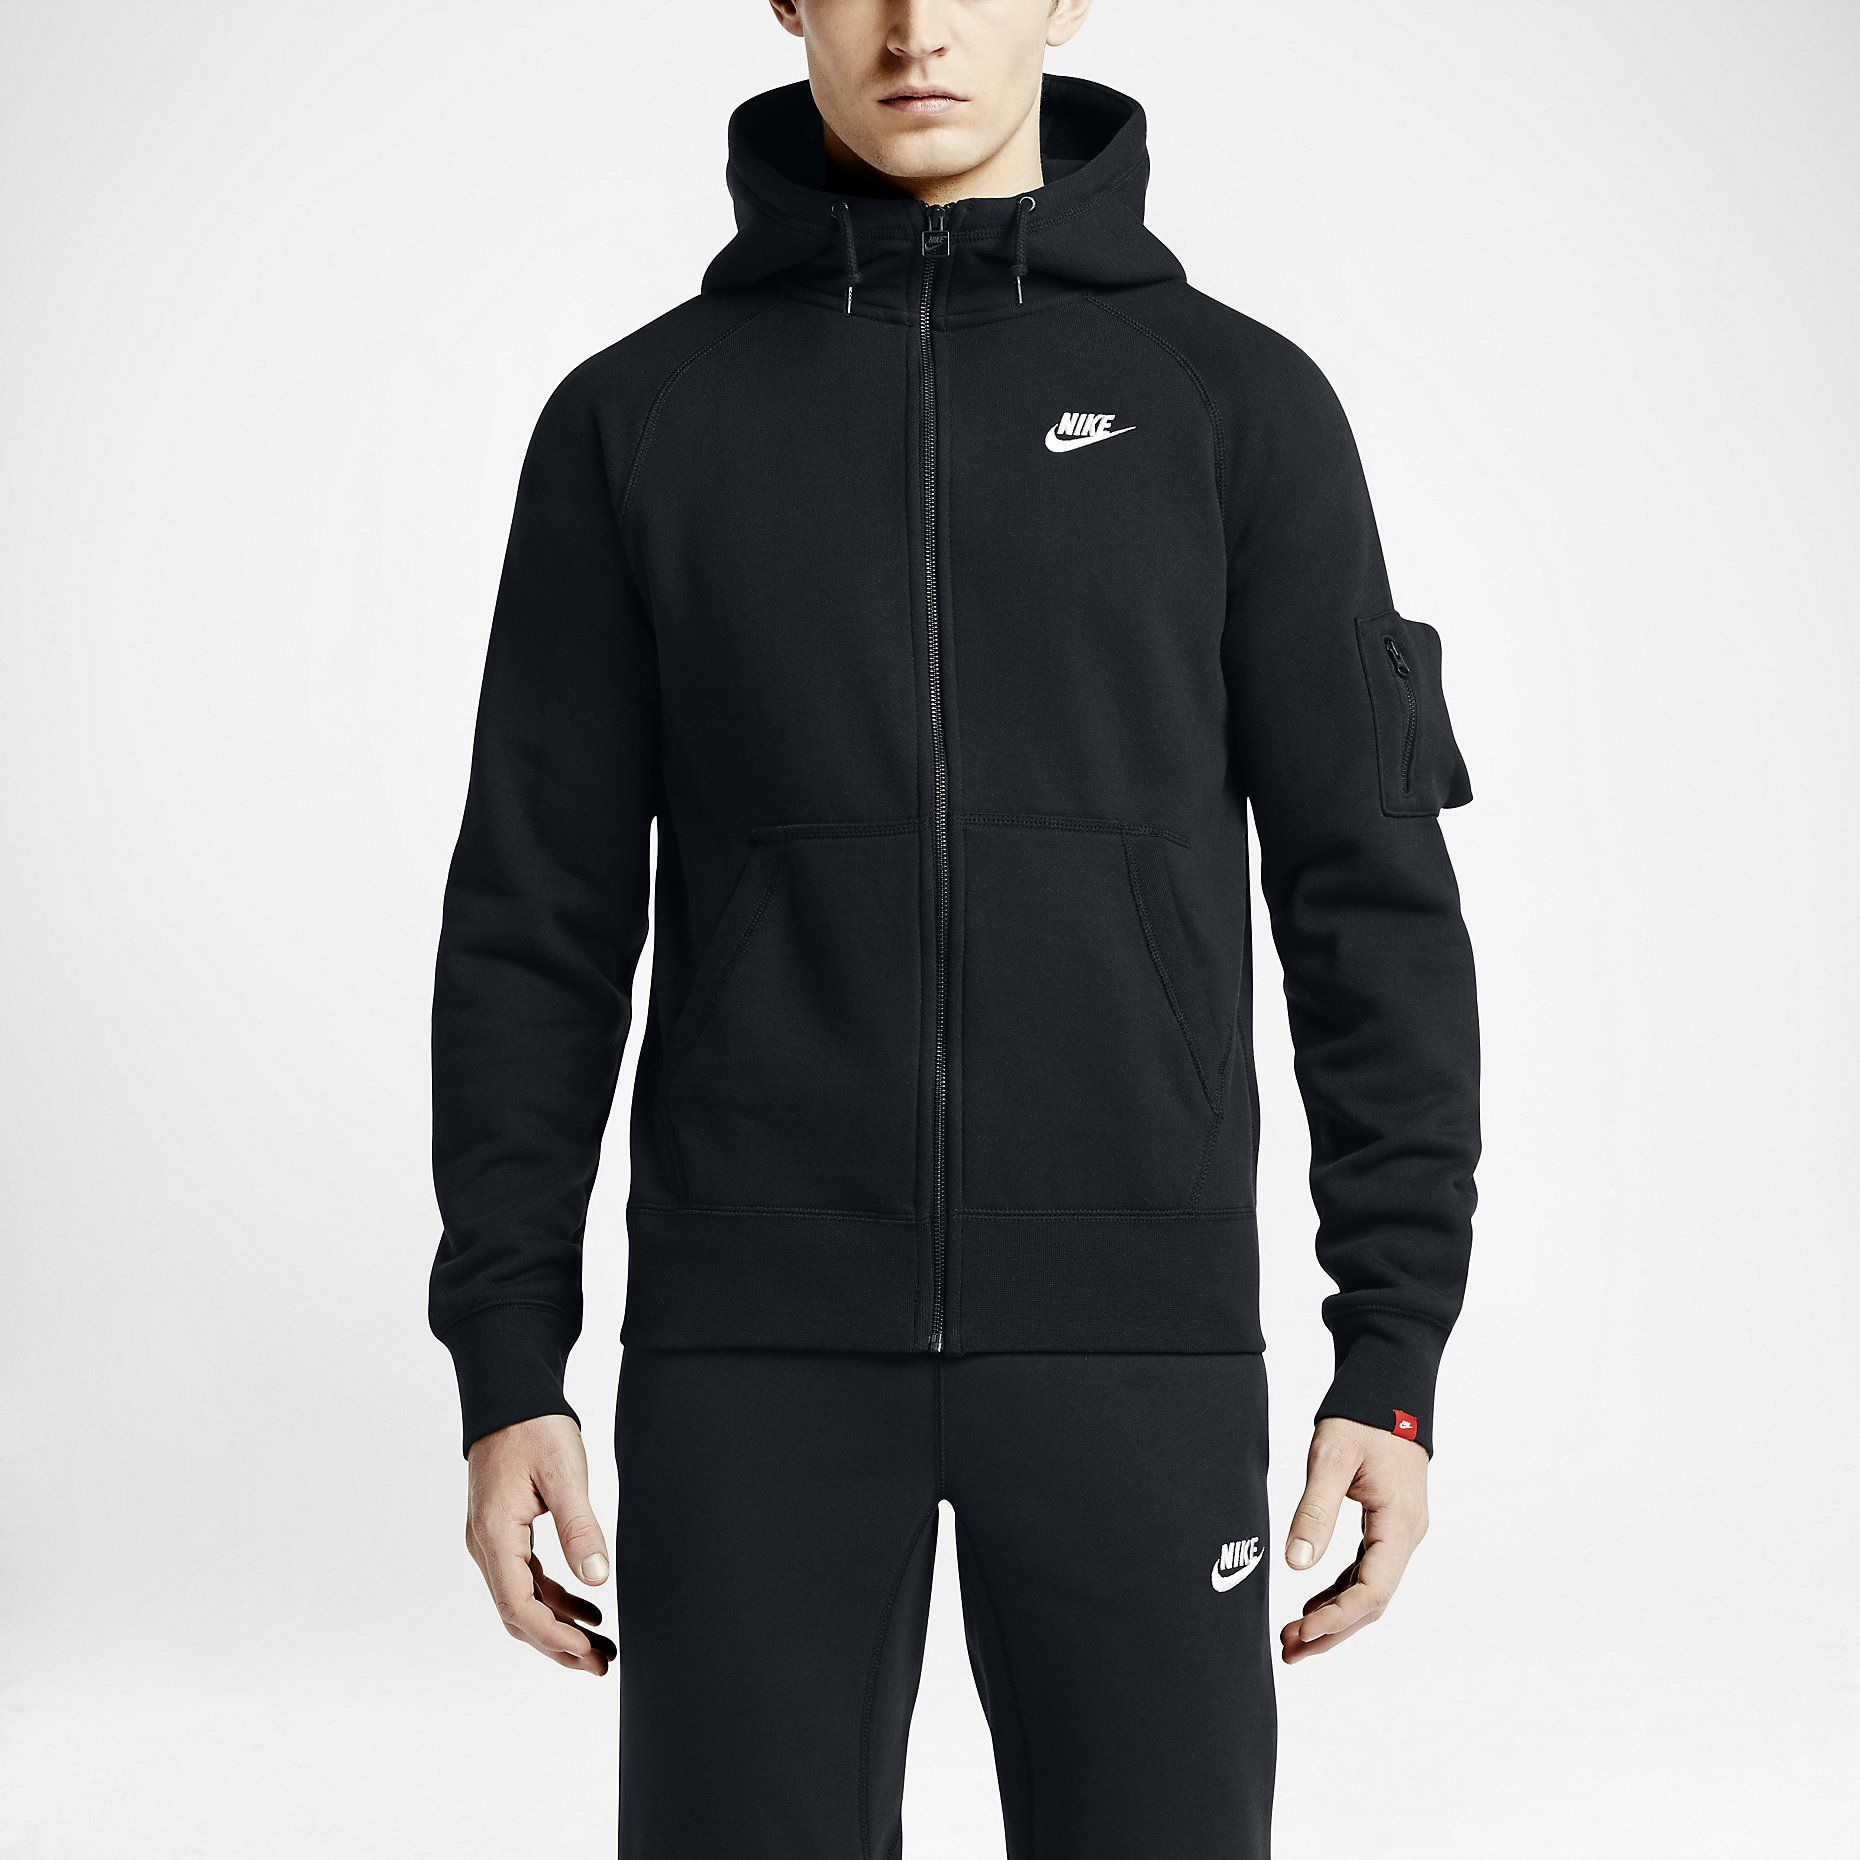 e60ab74dbc62 Nike AW77 Fleece Full-Zip Men s Hoodie. Nike Store